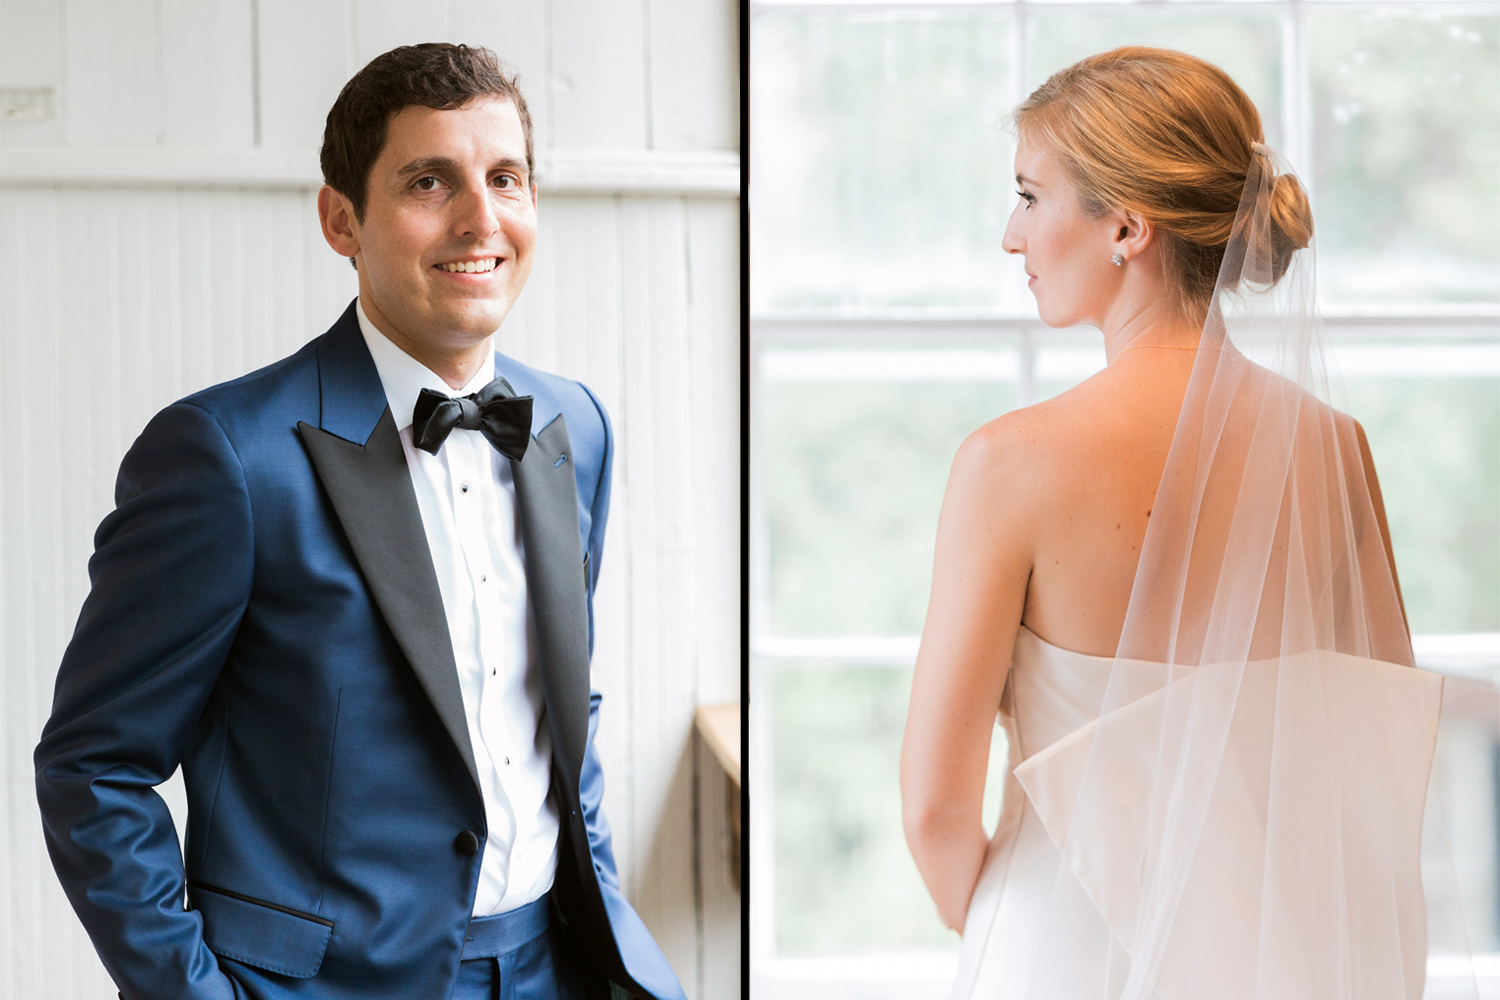 Georgetown wedding - Classic bride and groom